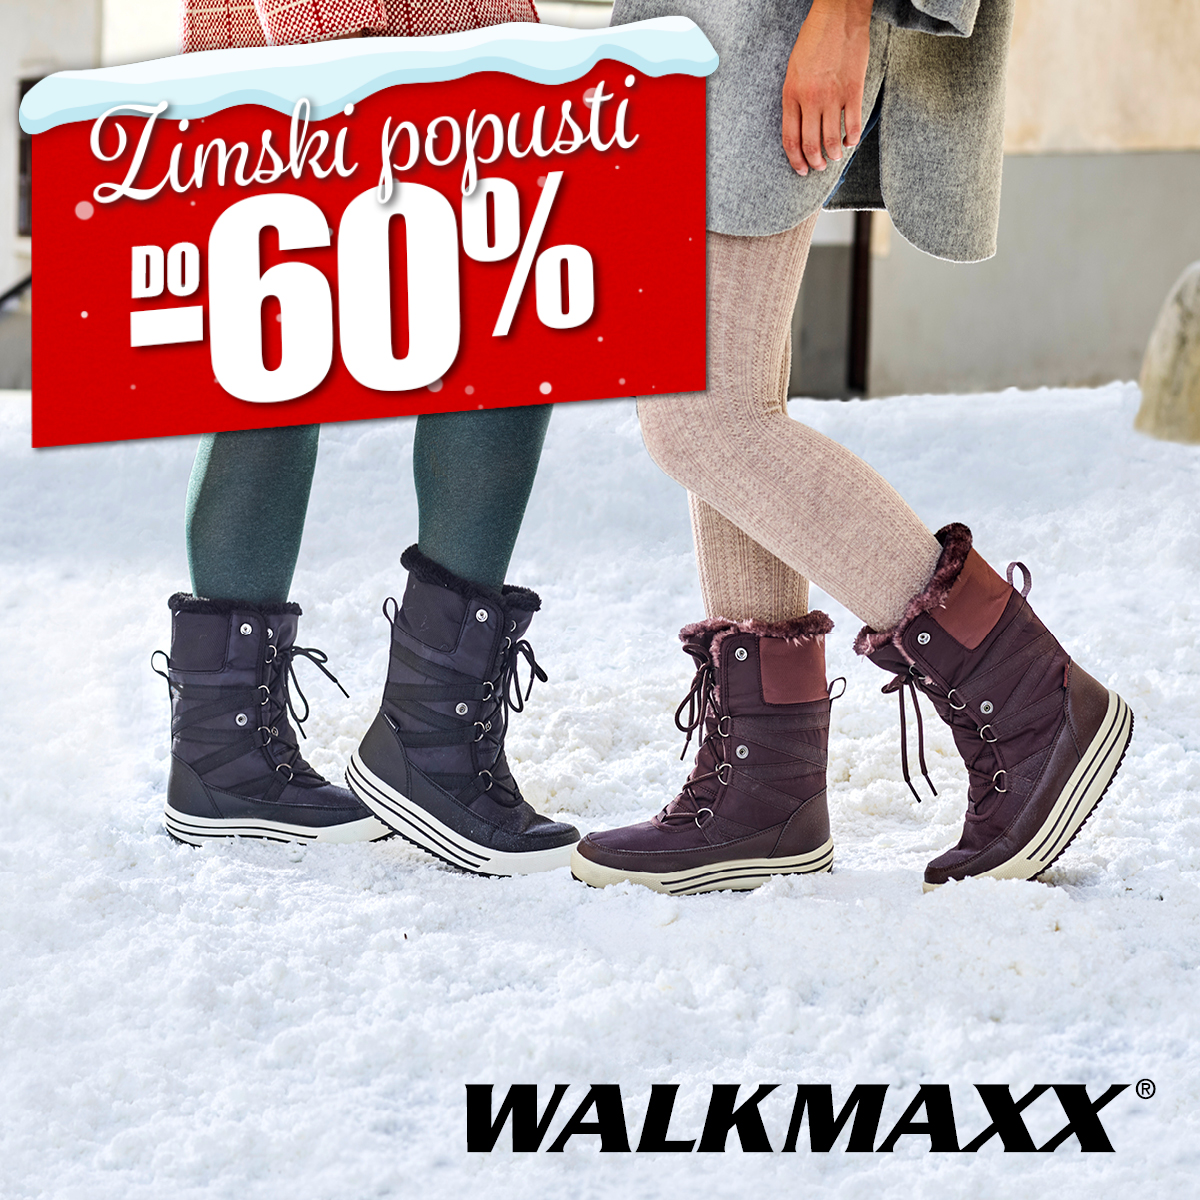 Walkmaxx zimski popusti do -60% 10